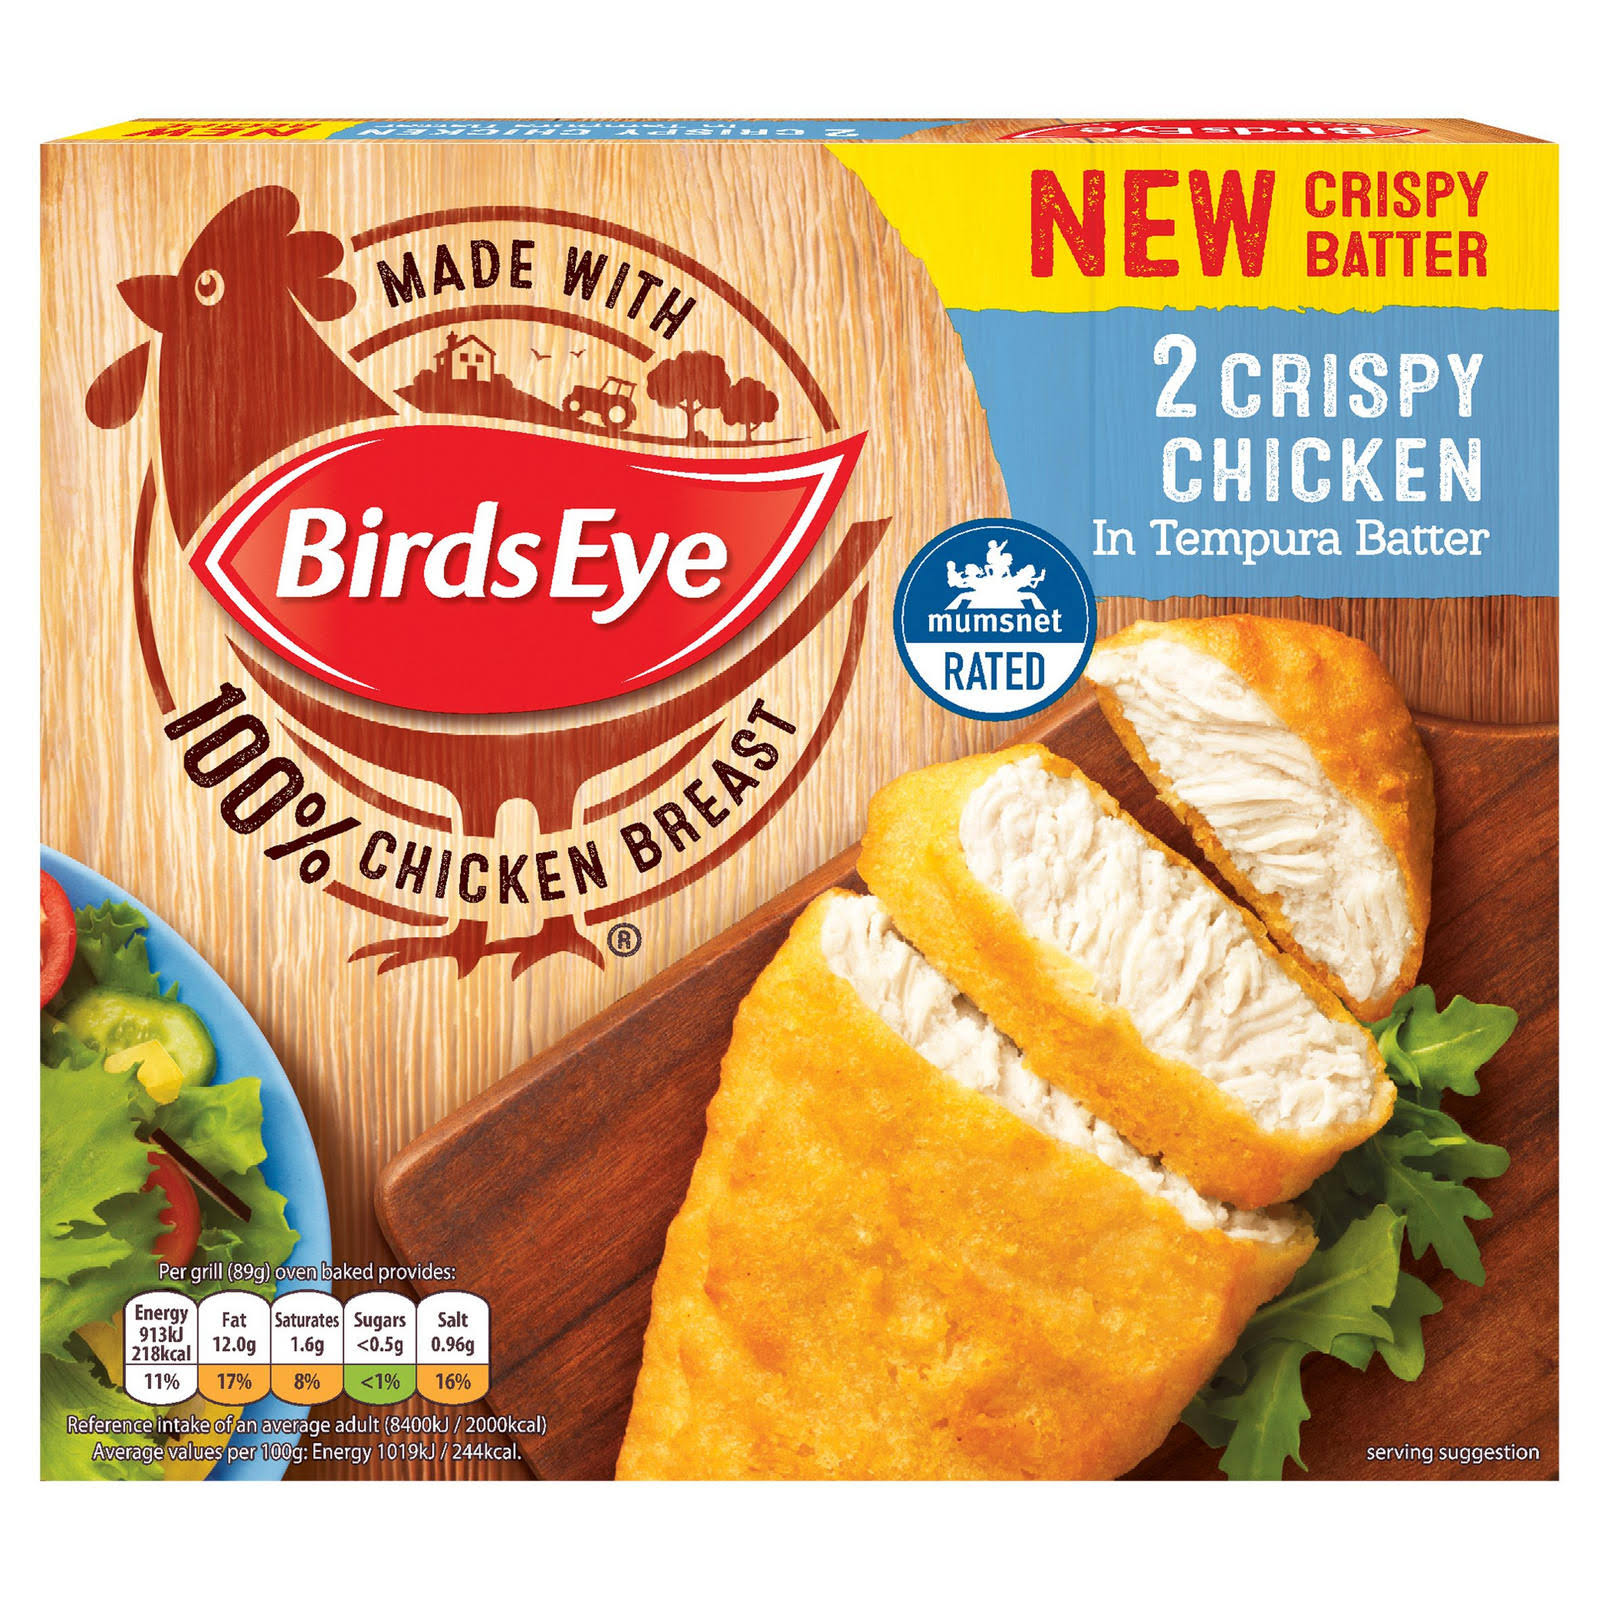 Birds Eye 2 Crispy Chicken - Tempura Batter, 170g